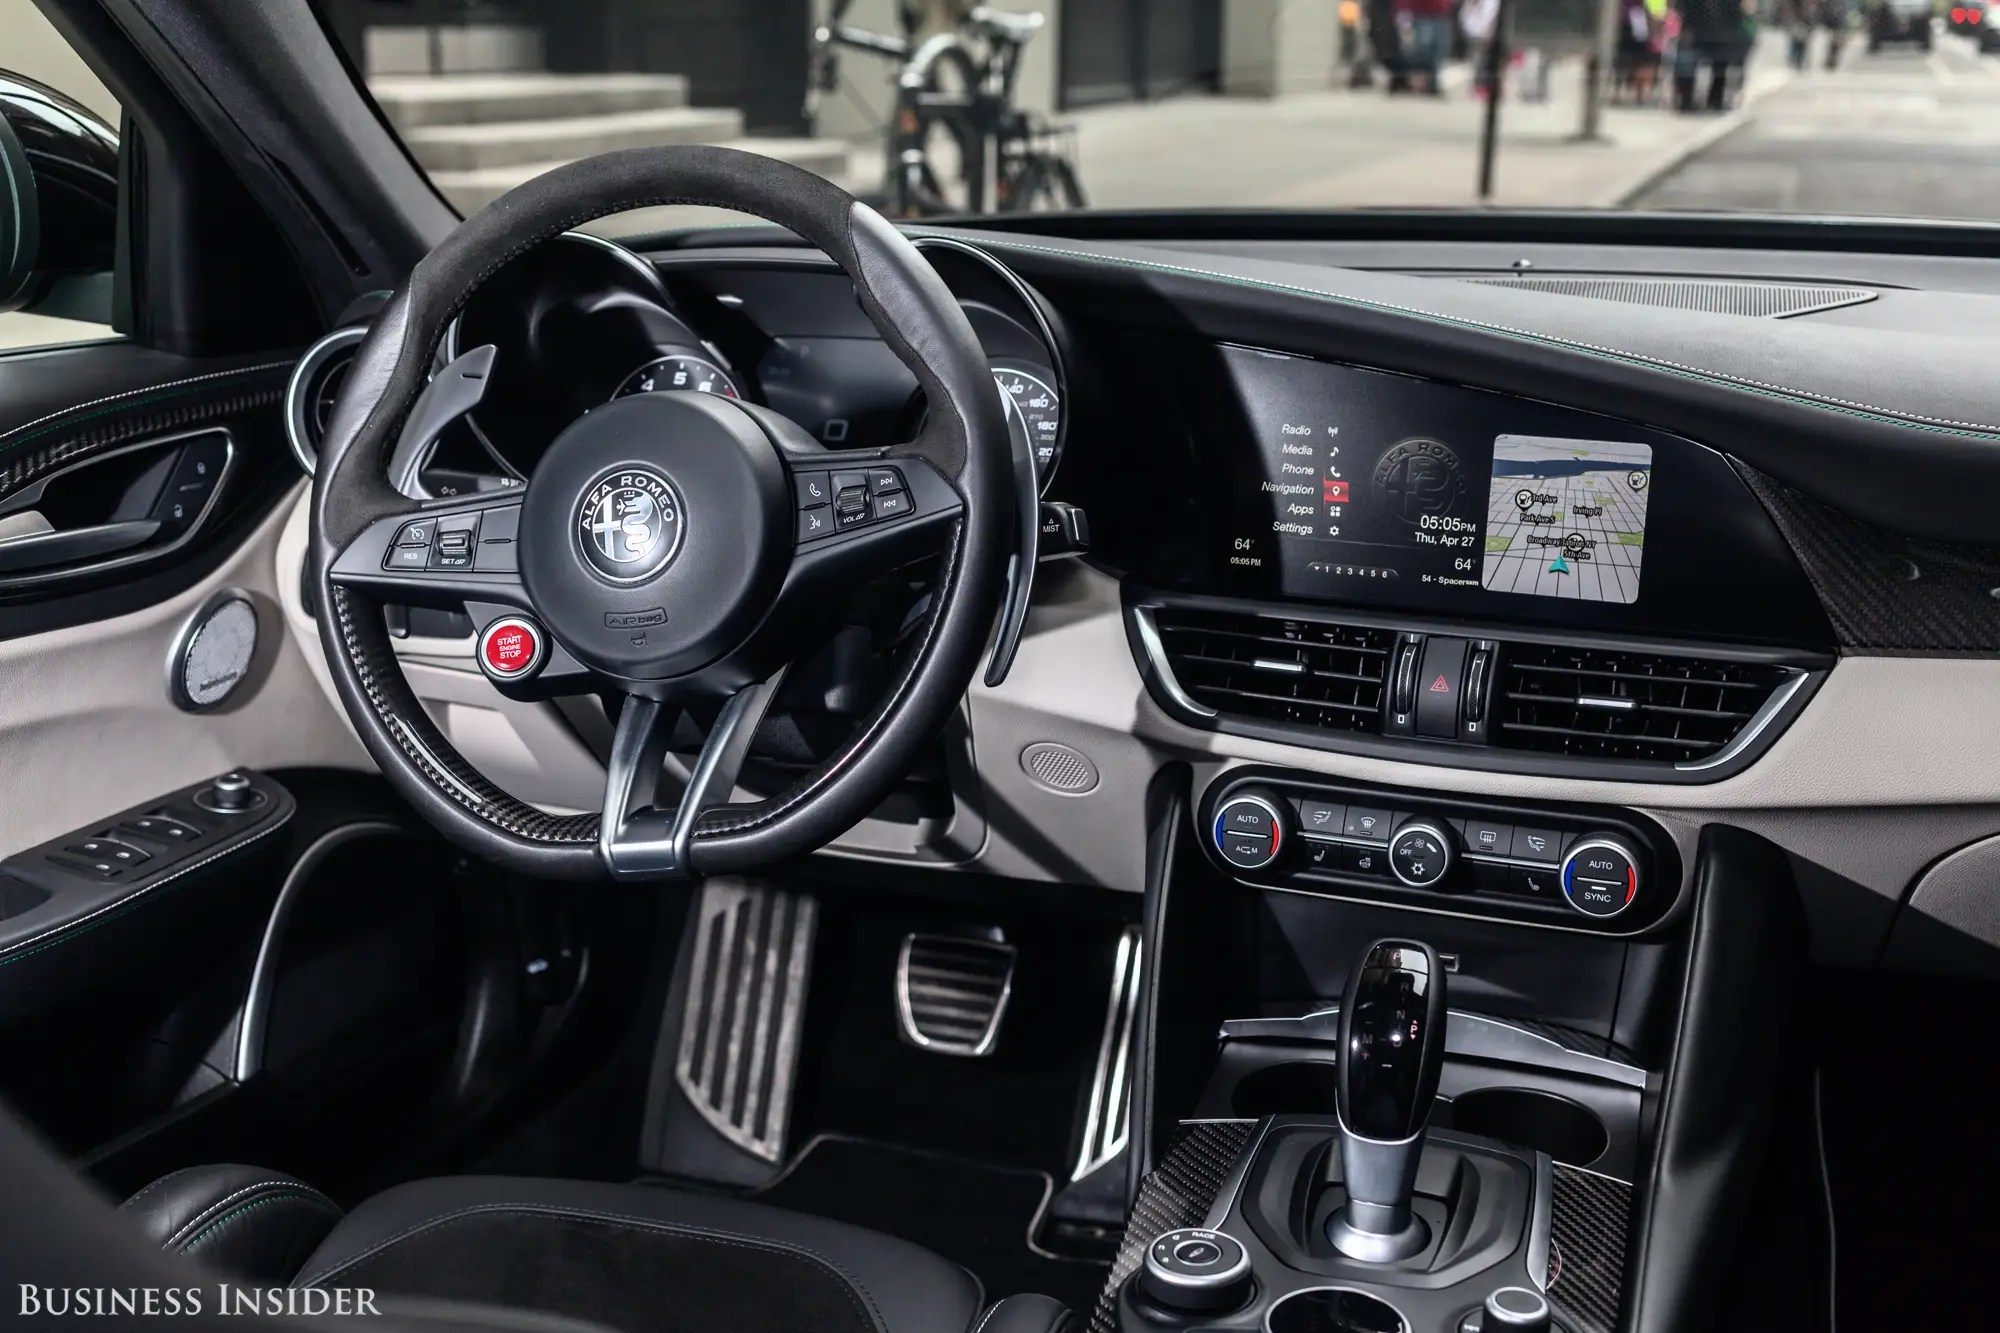 The cockpit is fairly no-nonsense, with easy-to-use controls and a comfortable, well-bolstered driver's seat.